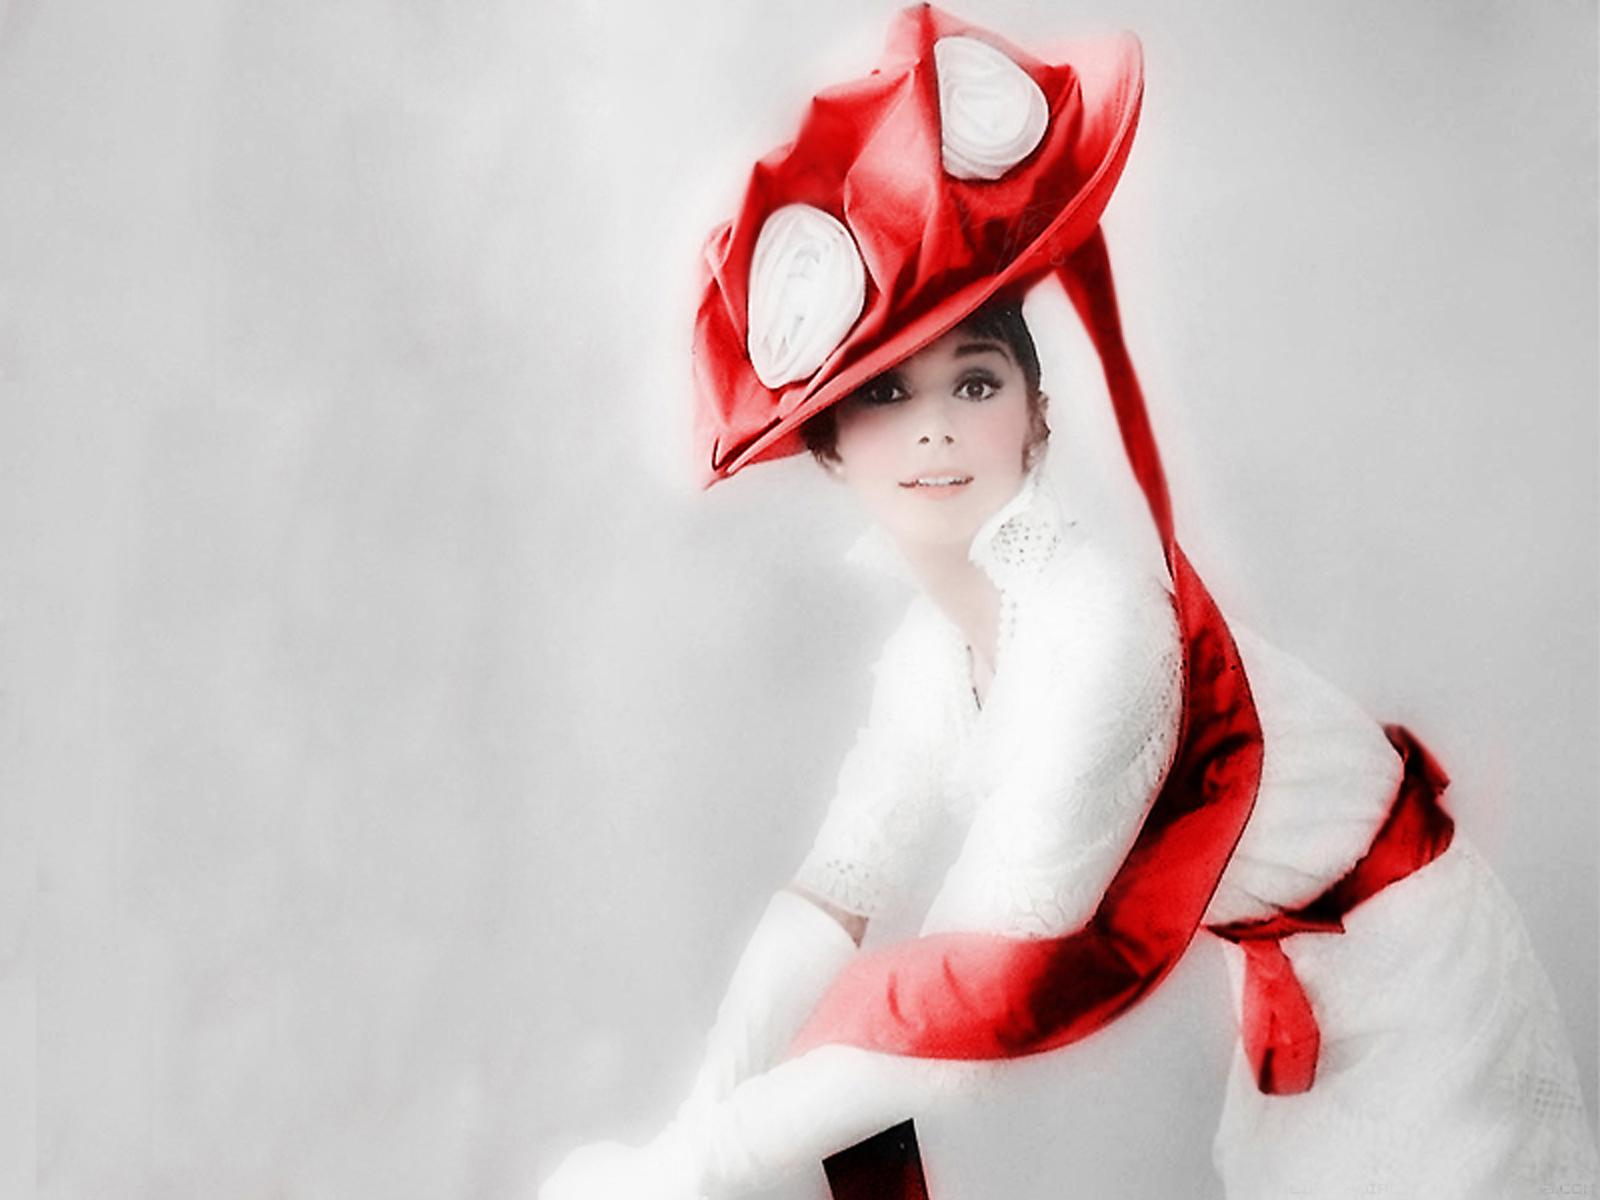 Godfather Hd Wallpaper Wallpapers Photo Art Audrey Hepburn Wallpapers Audrey